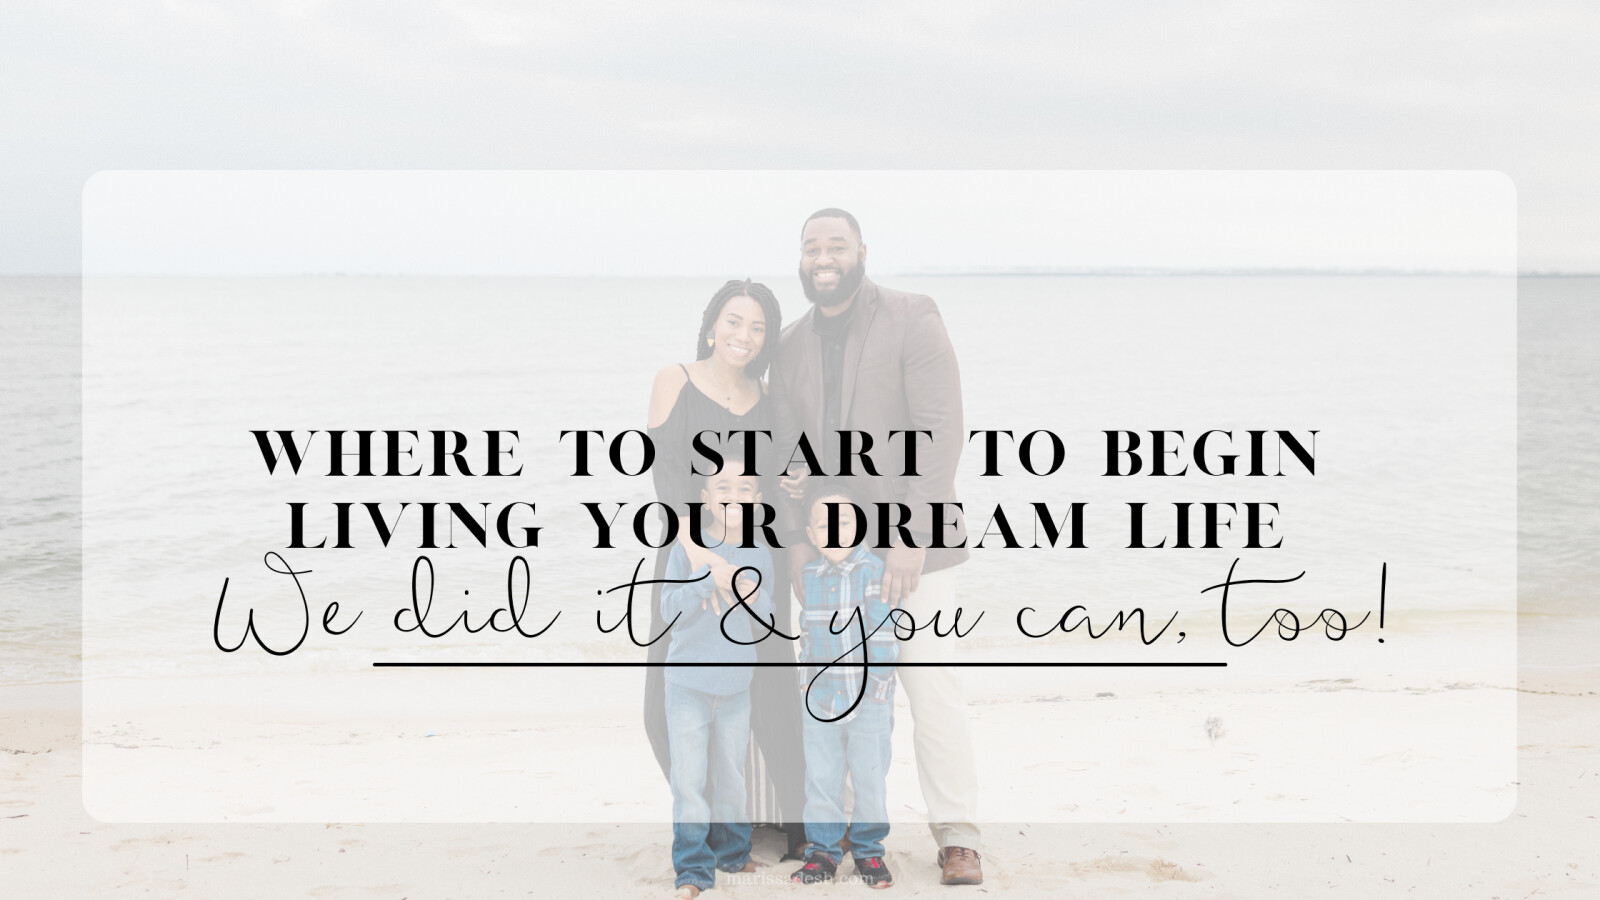 Where to start to begin living your dream life | We did it, and you can, too!